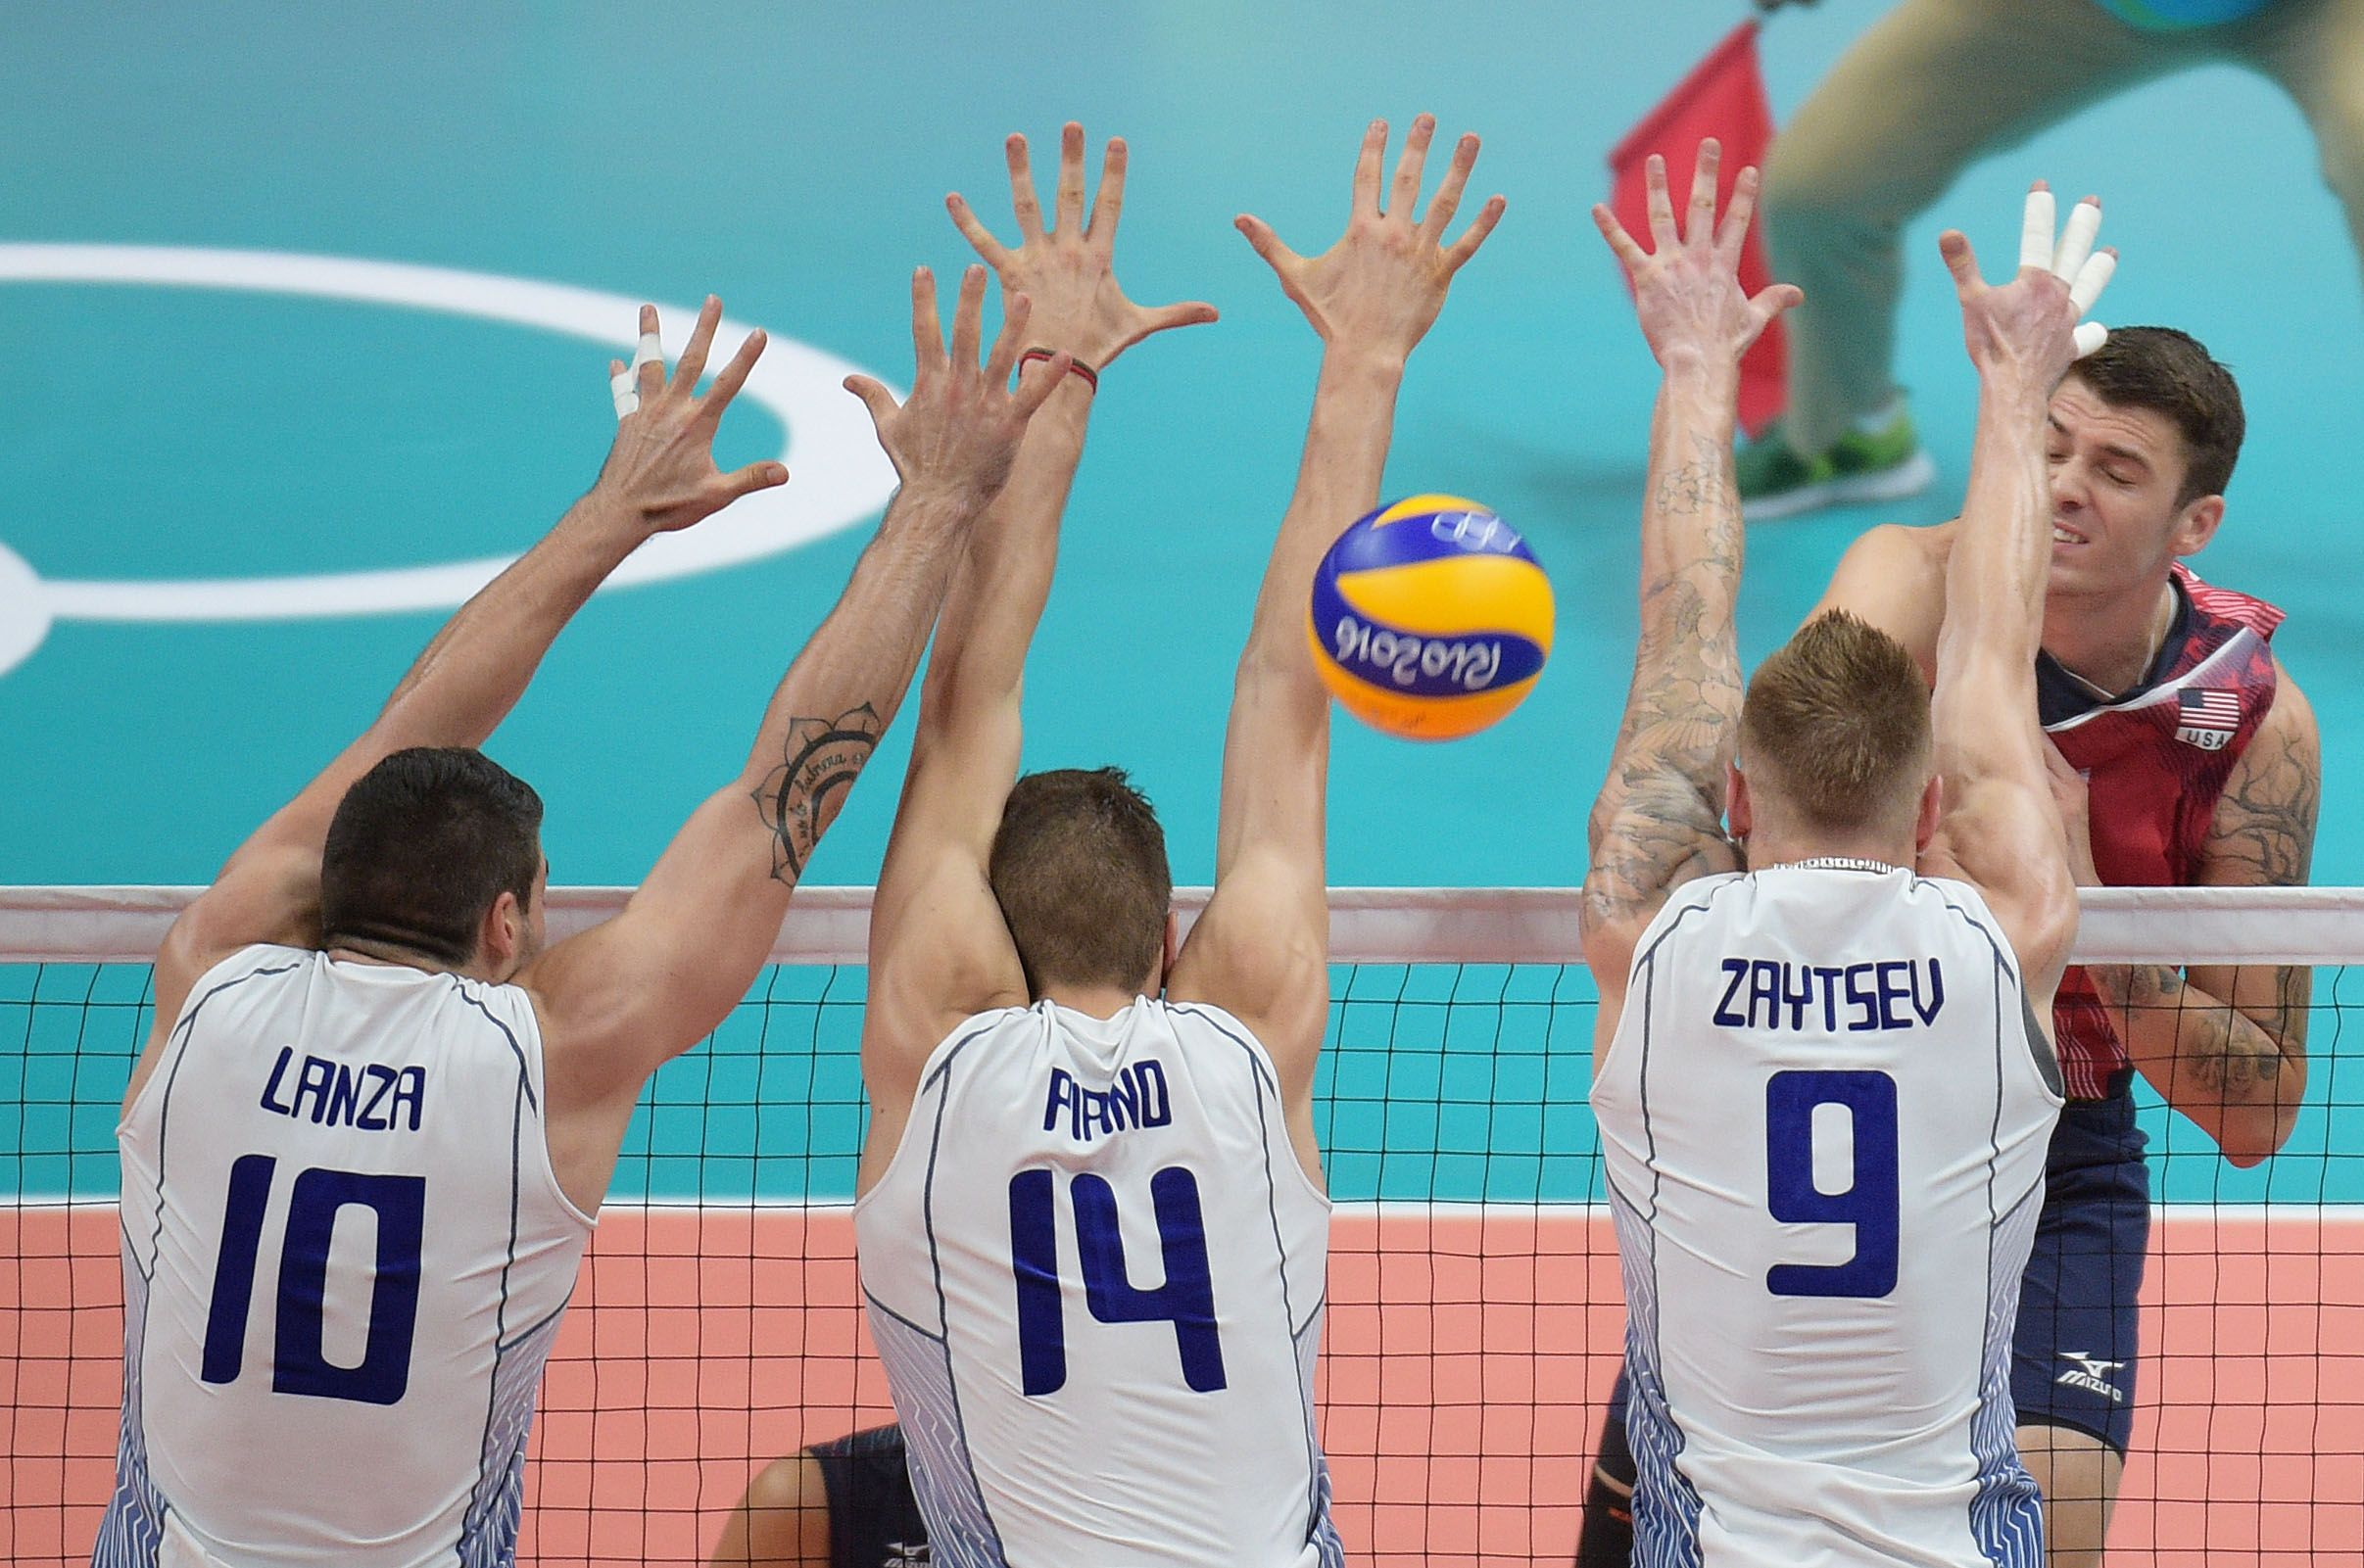 Matthew Anderson Spikes Against The Italian Triple Block In 2020 Volleyball Matthew Anderson Sports Jersey